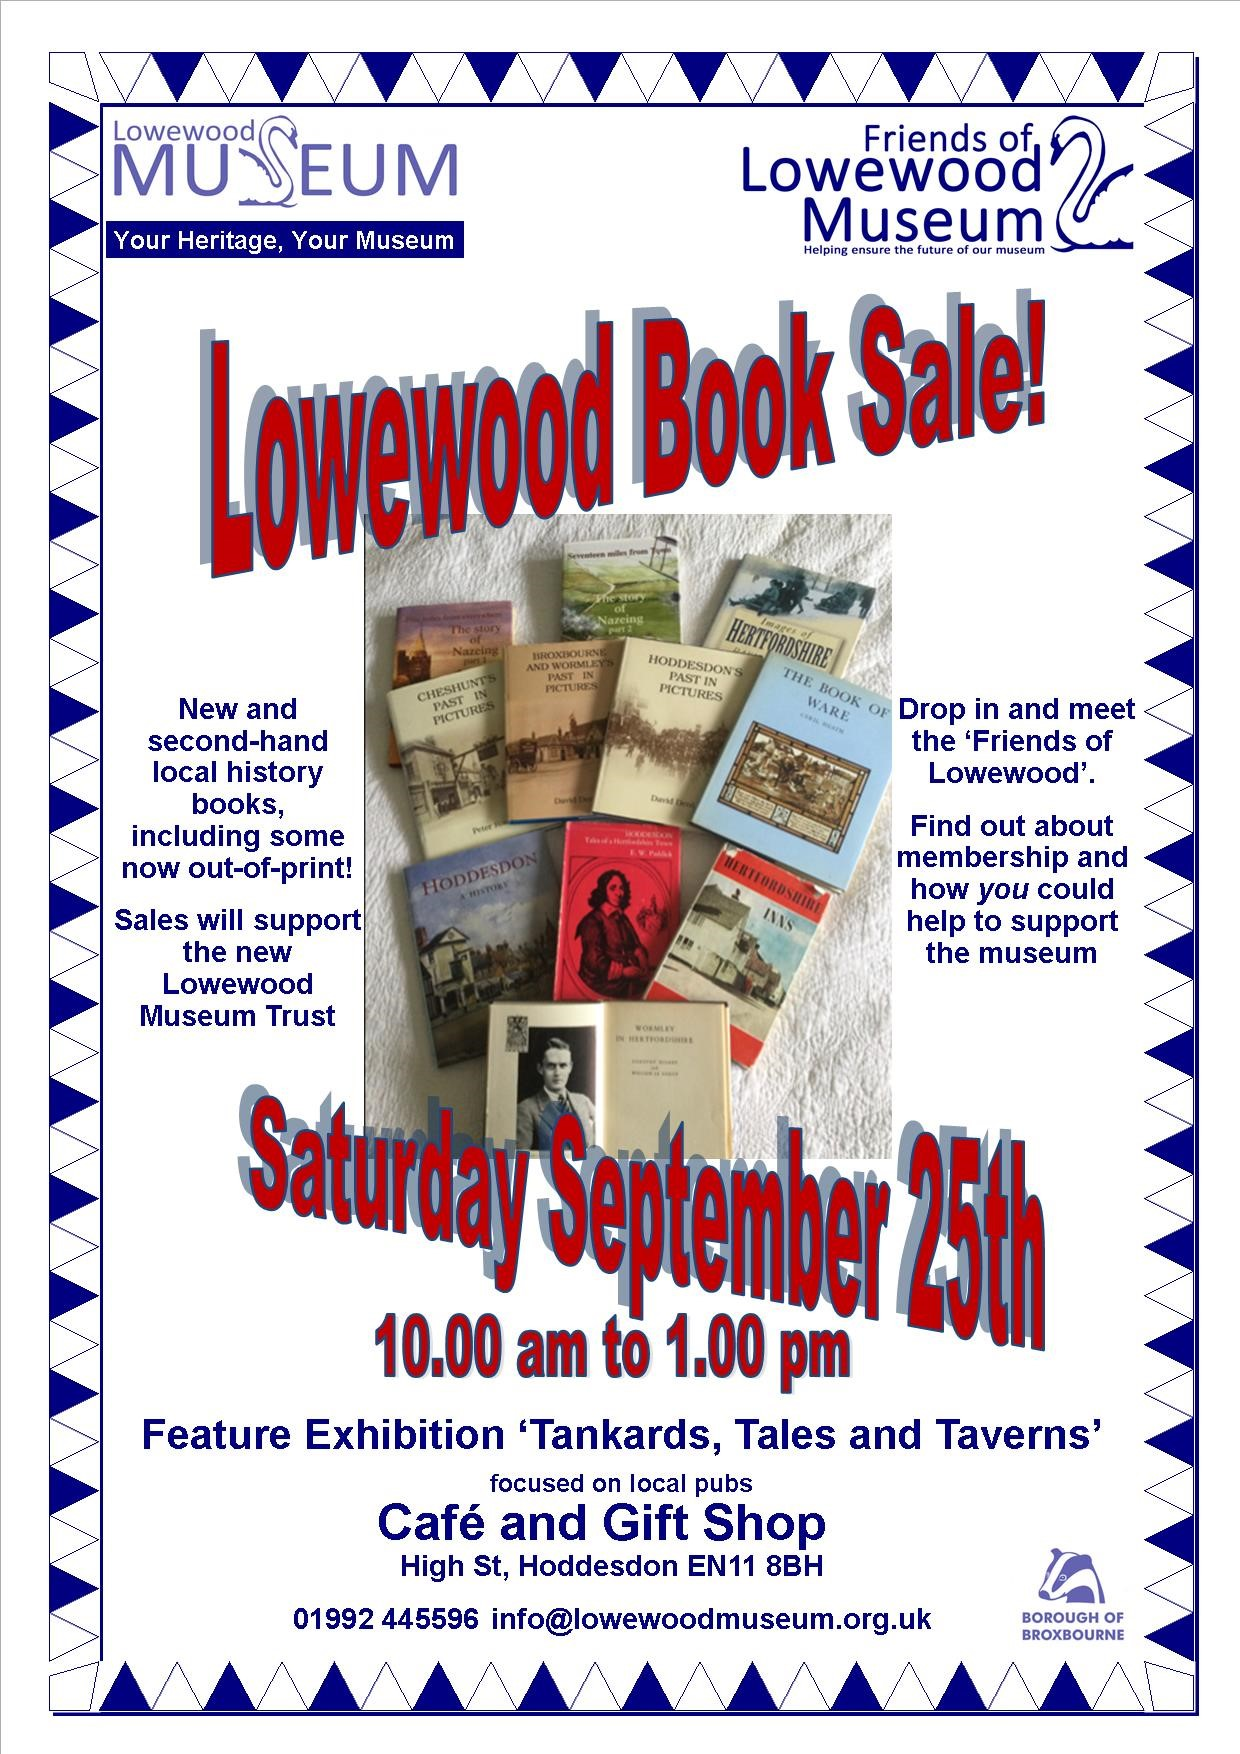 Second hand local history book sale at Lowewood Museum on Saturday 25 September 10am-1pm